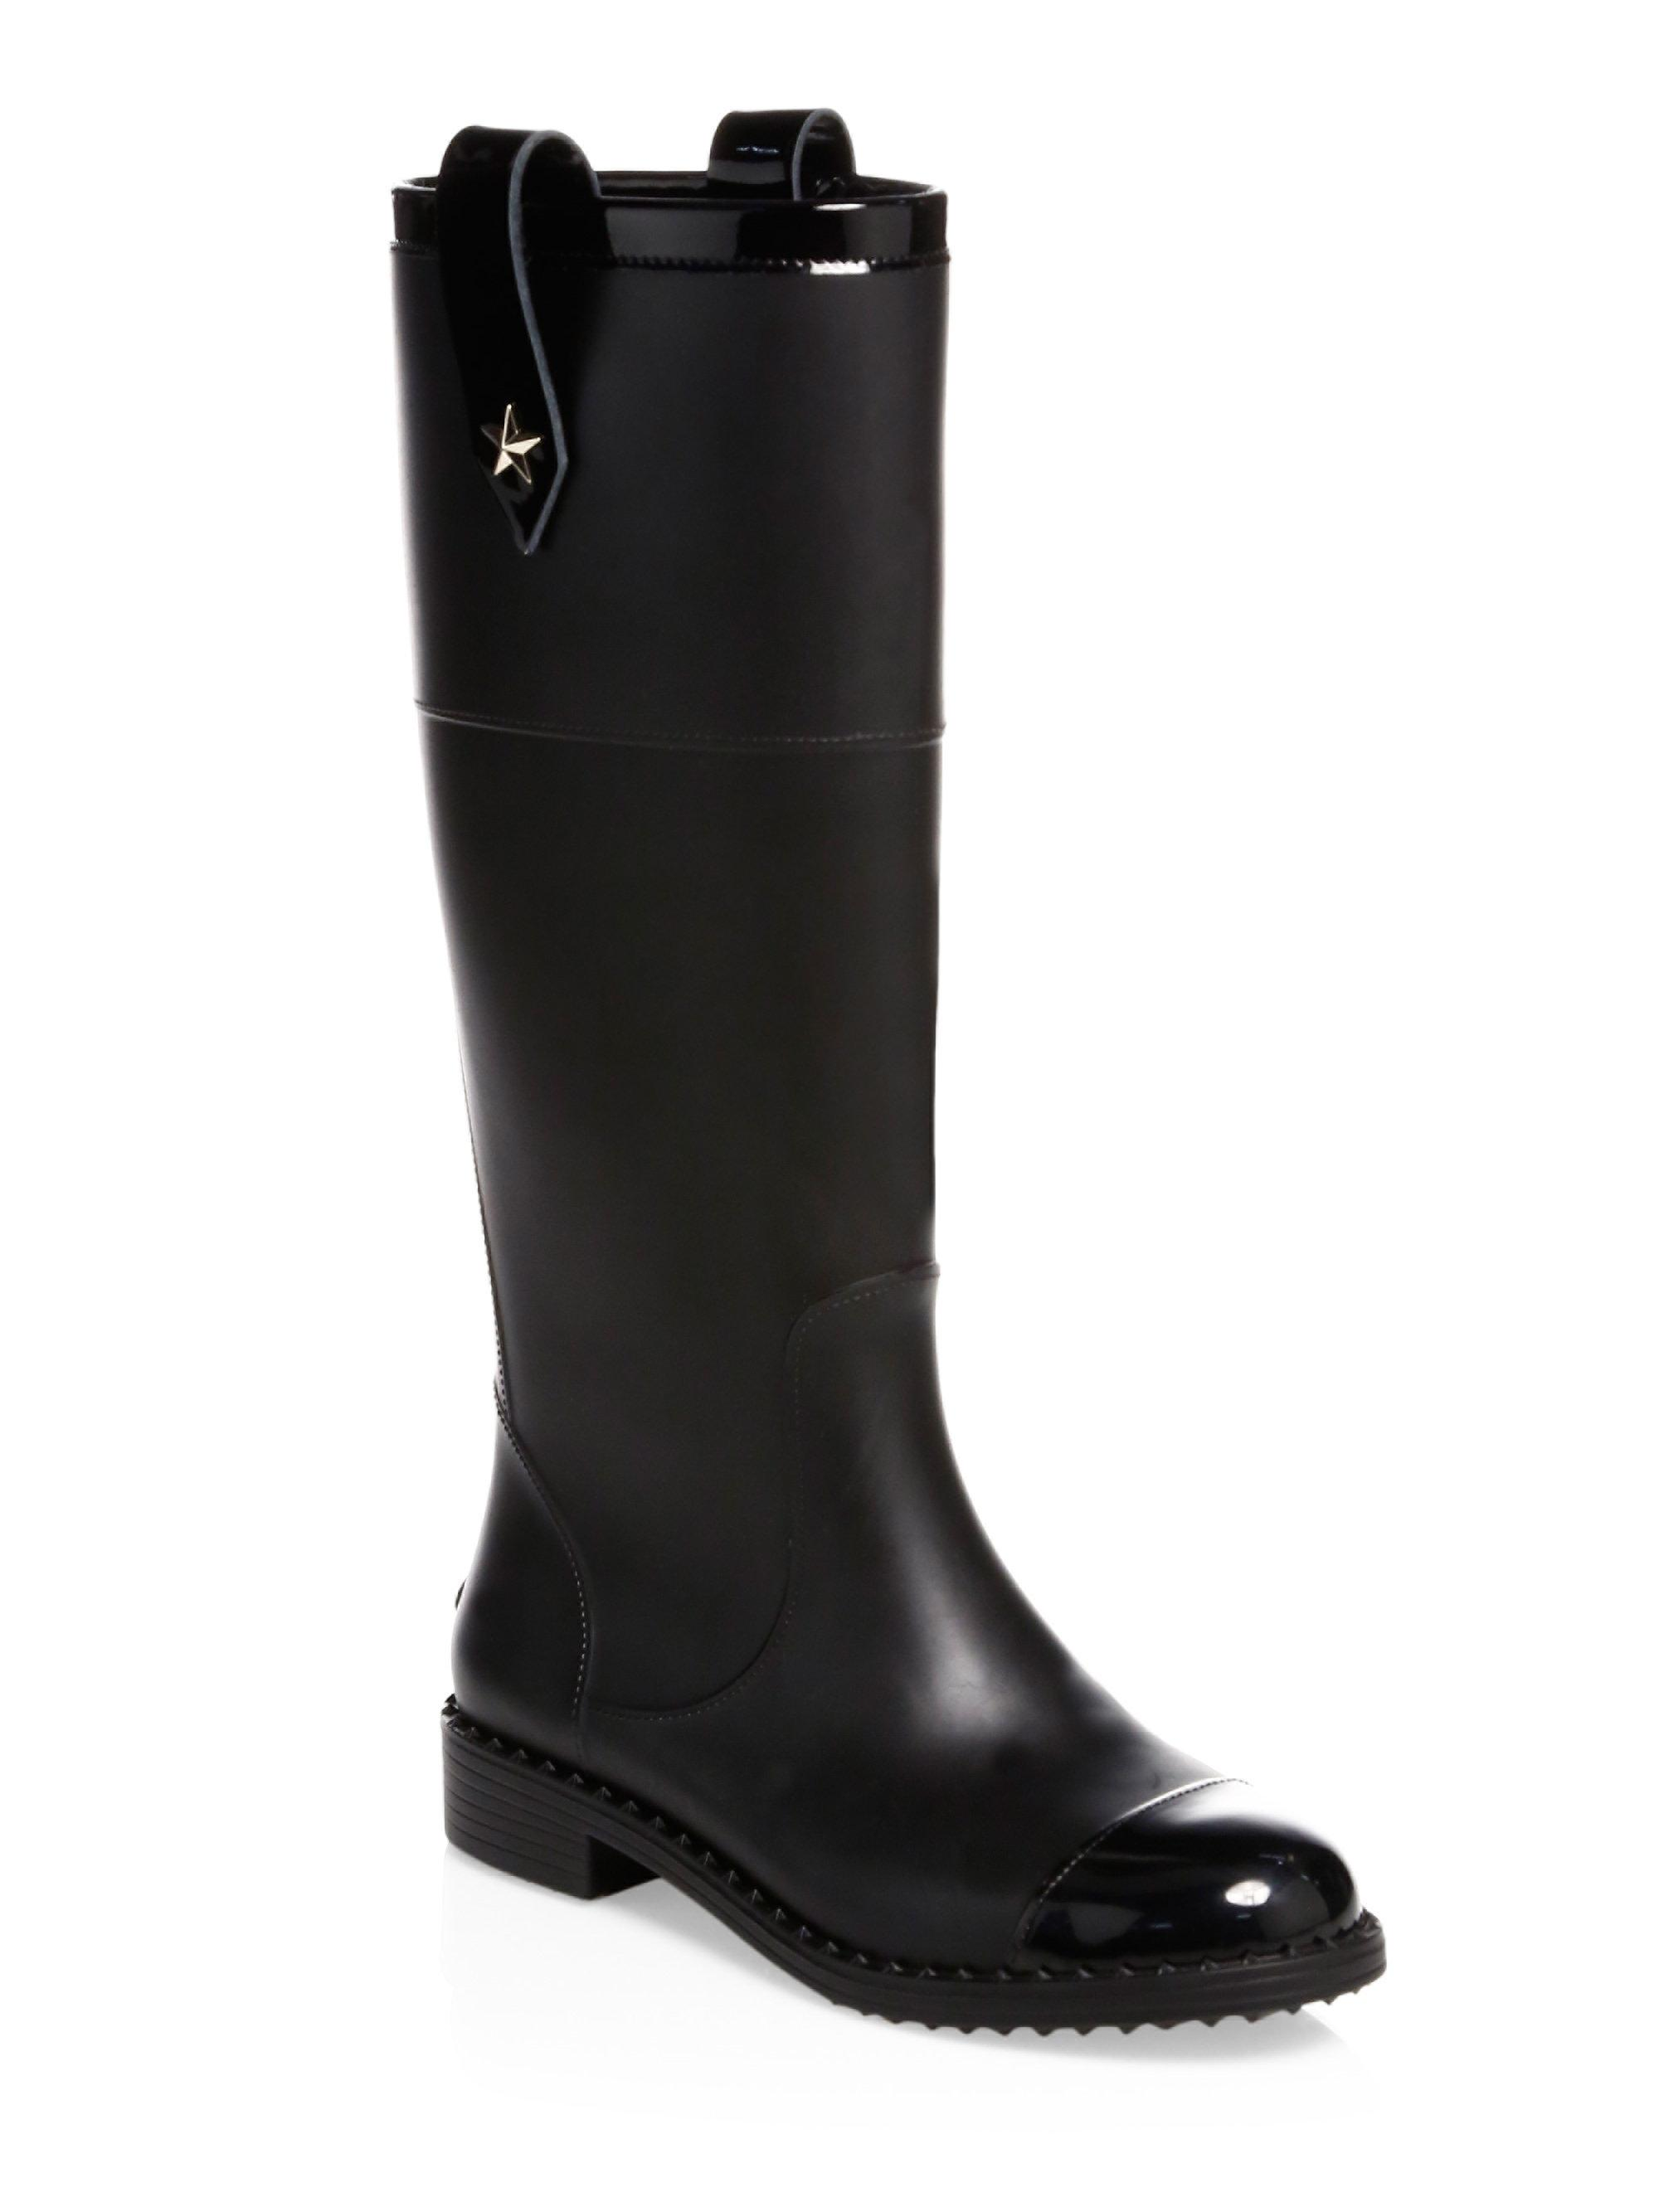 Jimmy choo Edith Knee-High Rubber Rainboots hYJrmho7t0